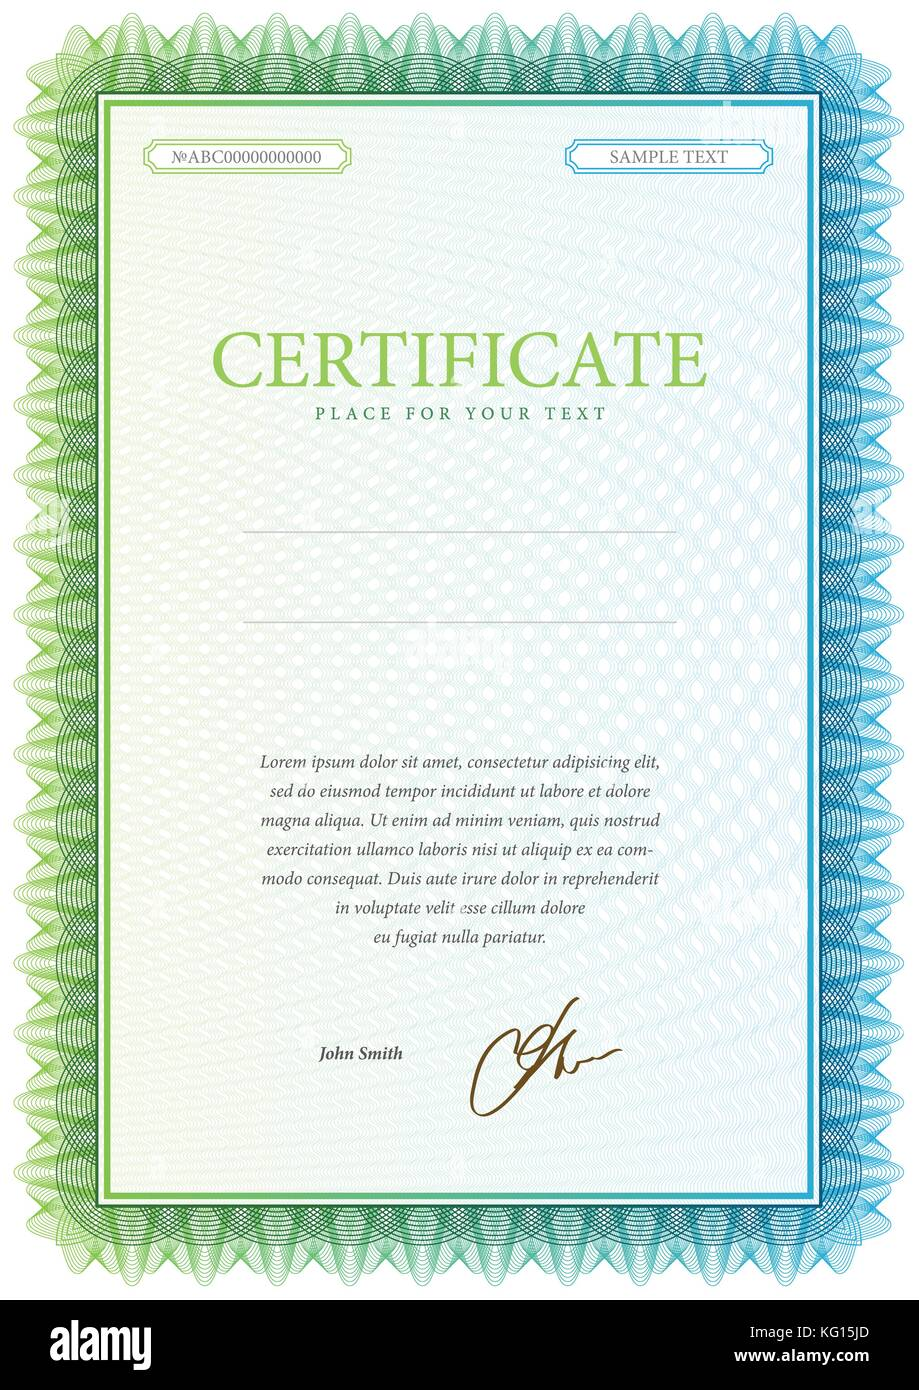 vector pattern that is used in currency and diplomas stock image - Certificate Of Accomplishment Template